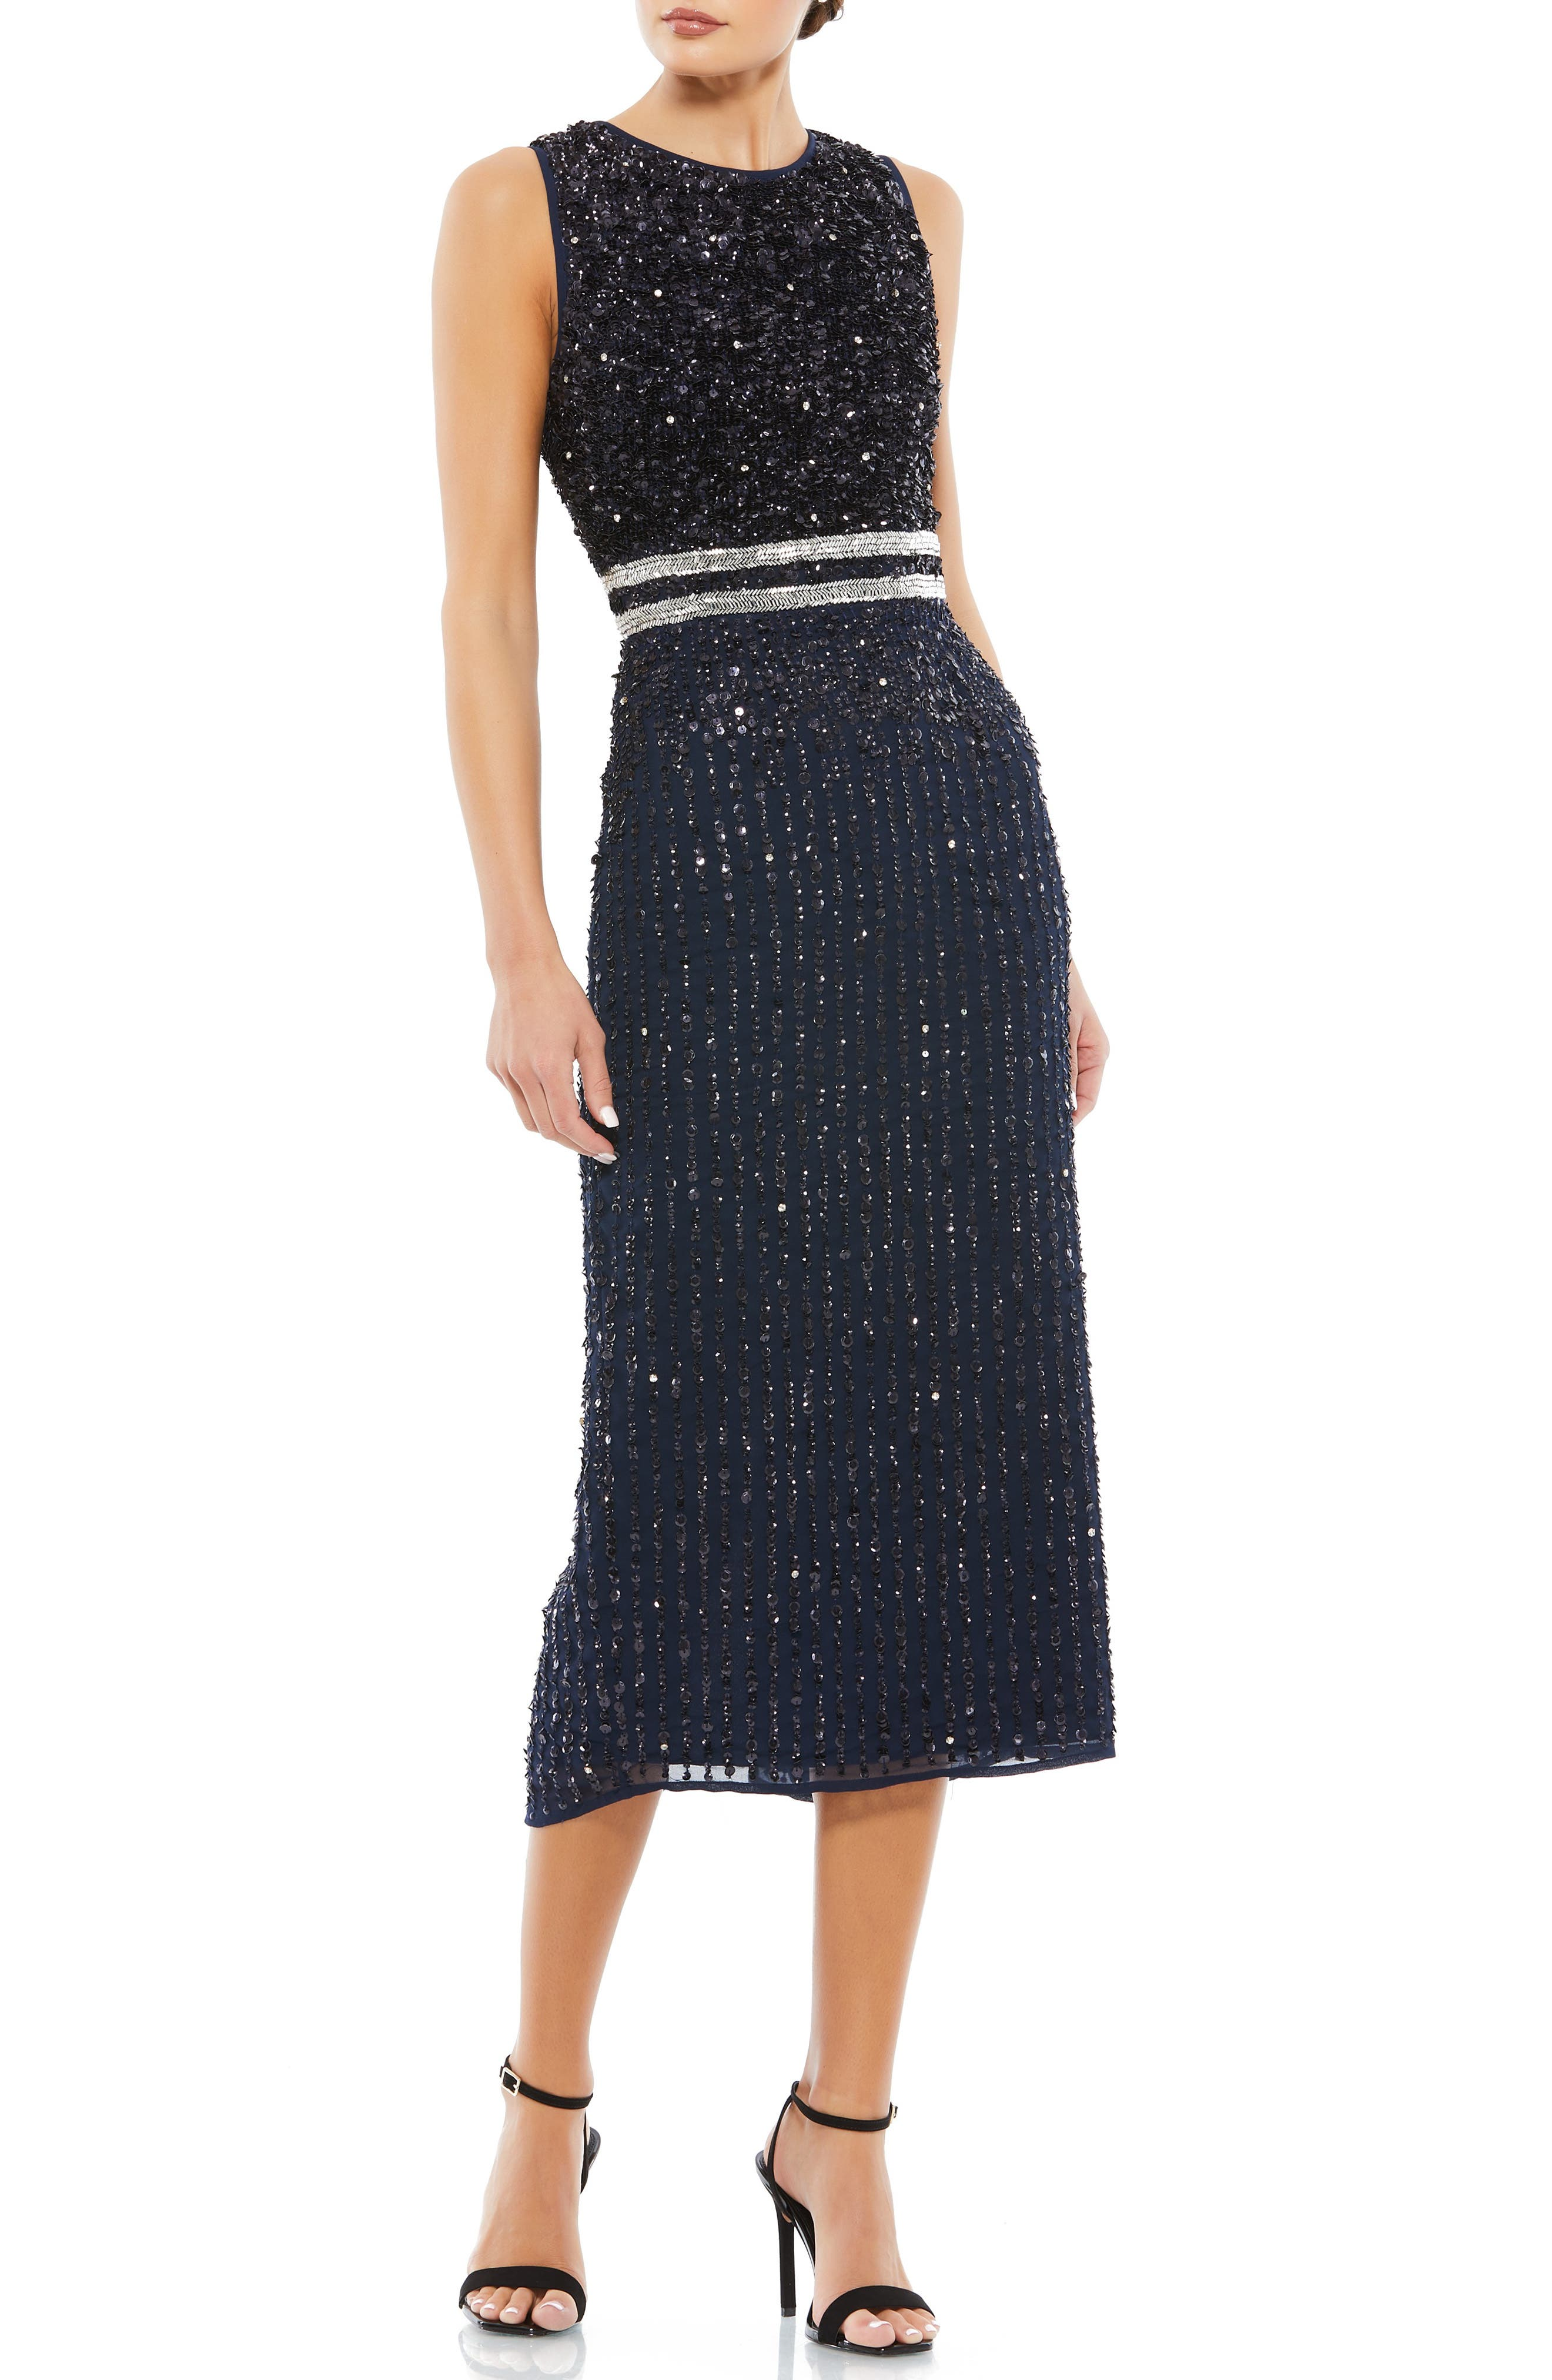 70s Prom, Formal, Evening, Party Dresses Mac Duggal Vertical Sequin Midi Sheath Dress Size 16 in Navy at Nordstrom $398.00 AT vintagedancer.com